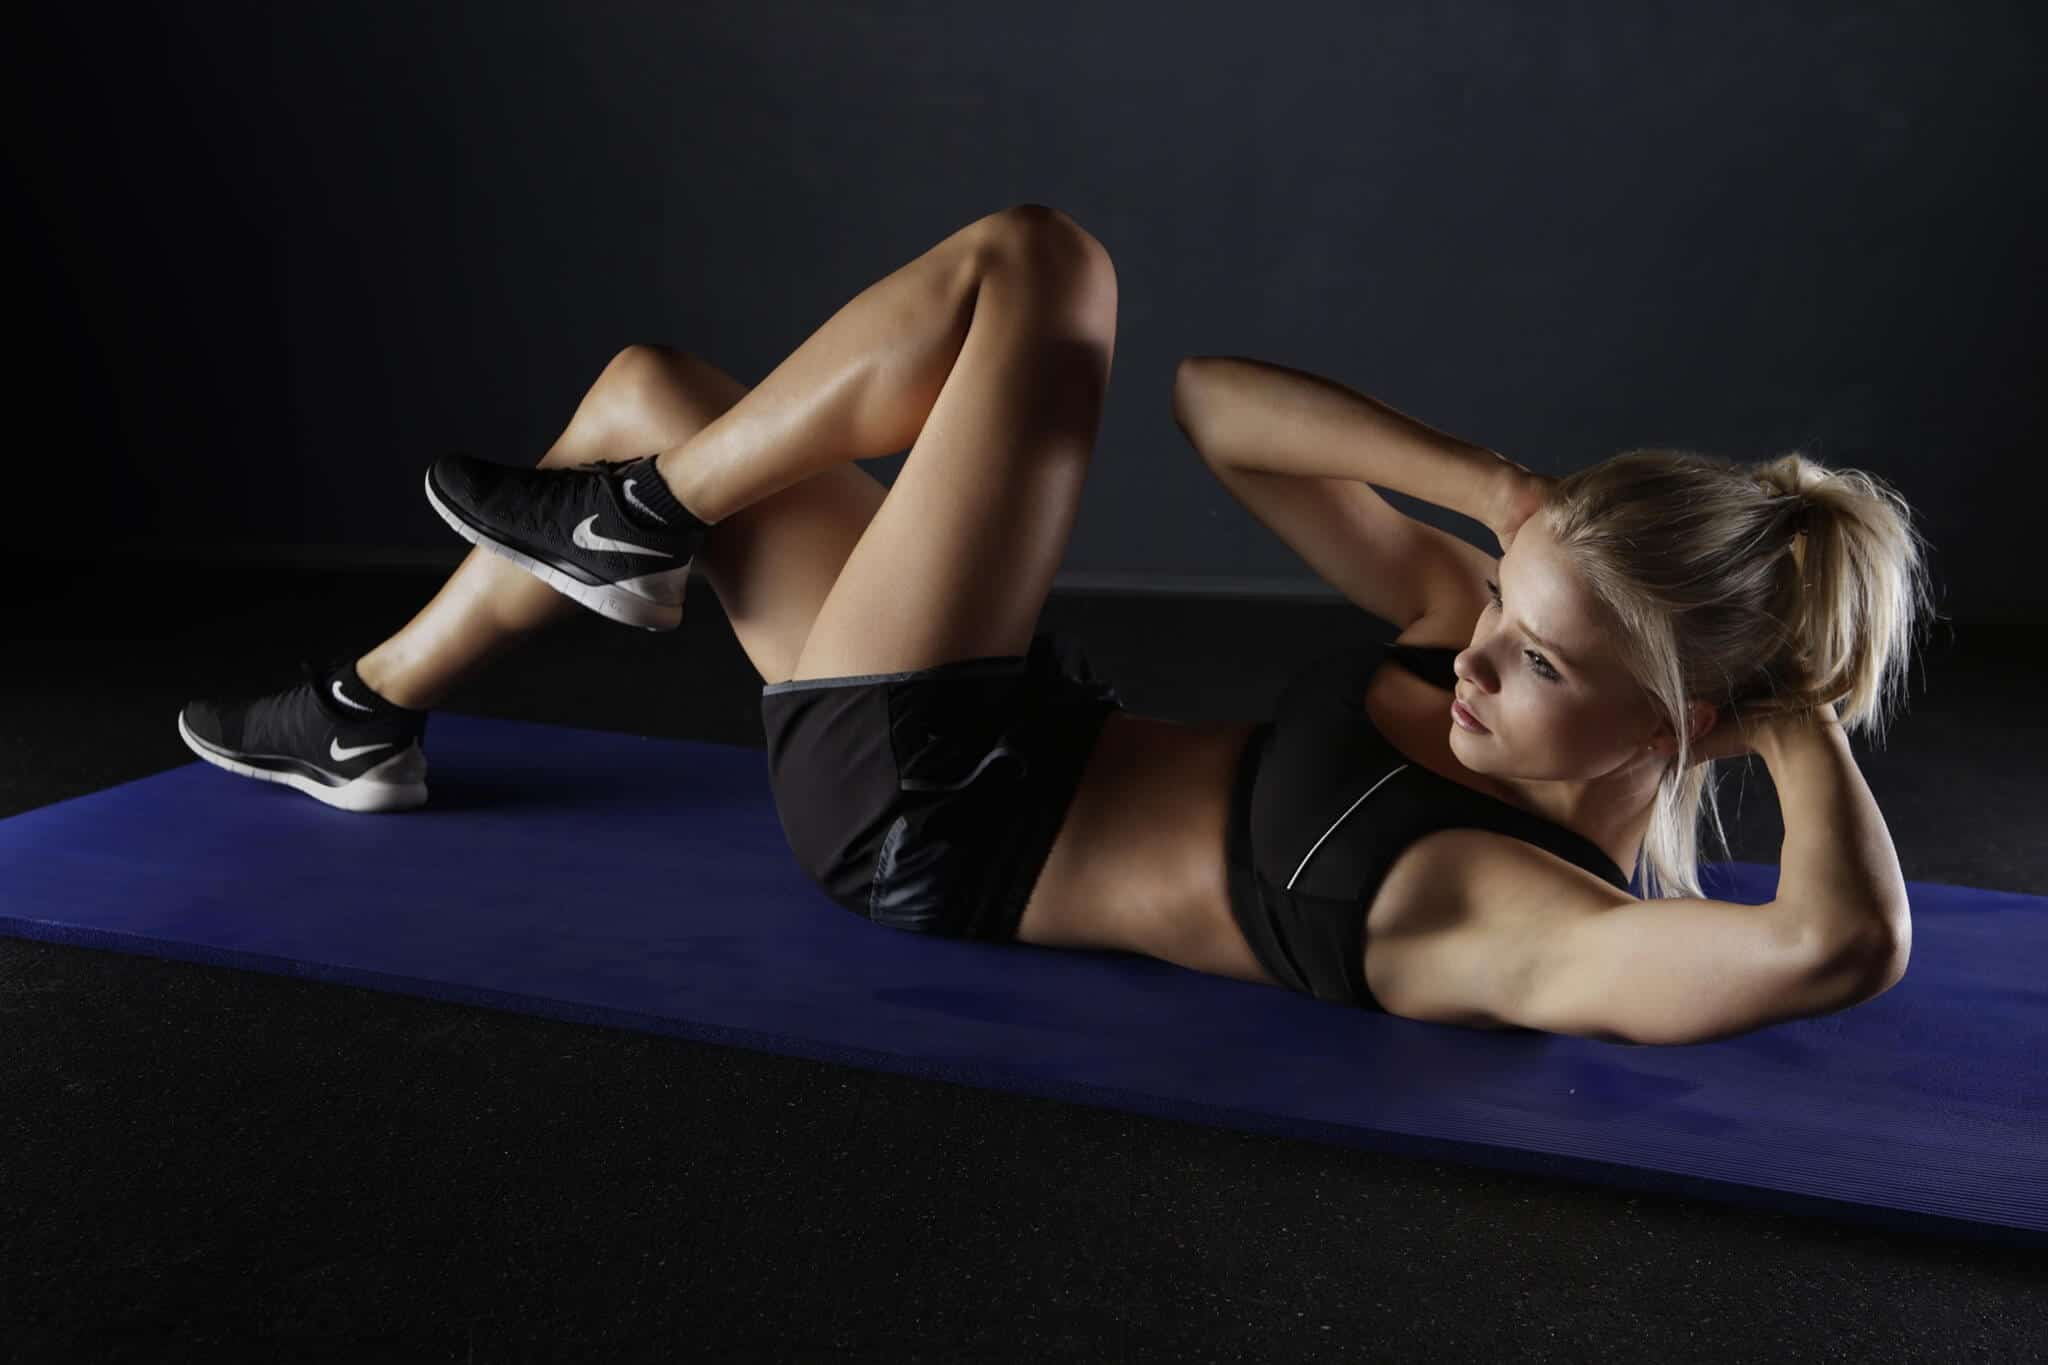 Bicycle crunches also known as Bicycle maneuver are the best ab exercise for beginners